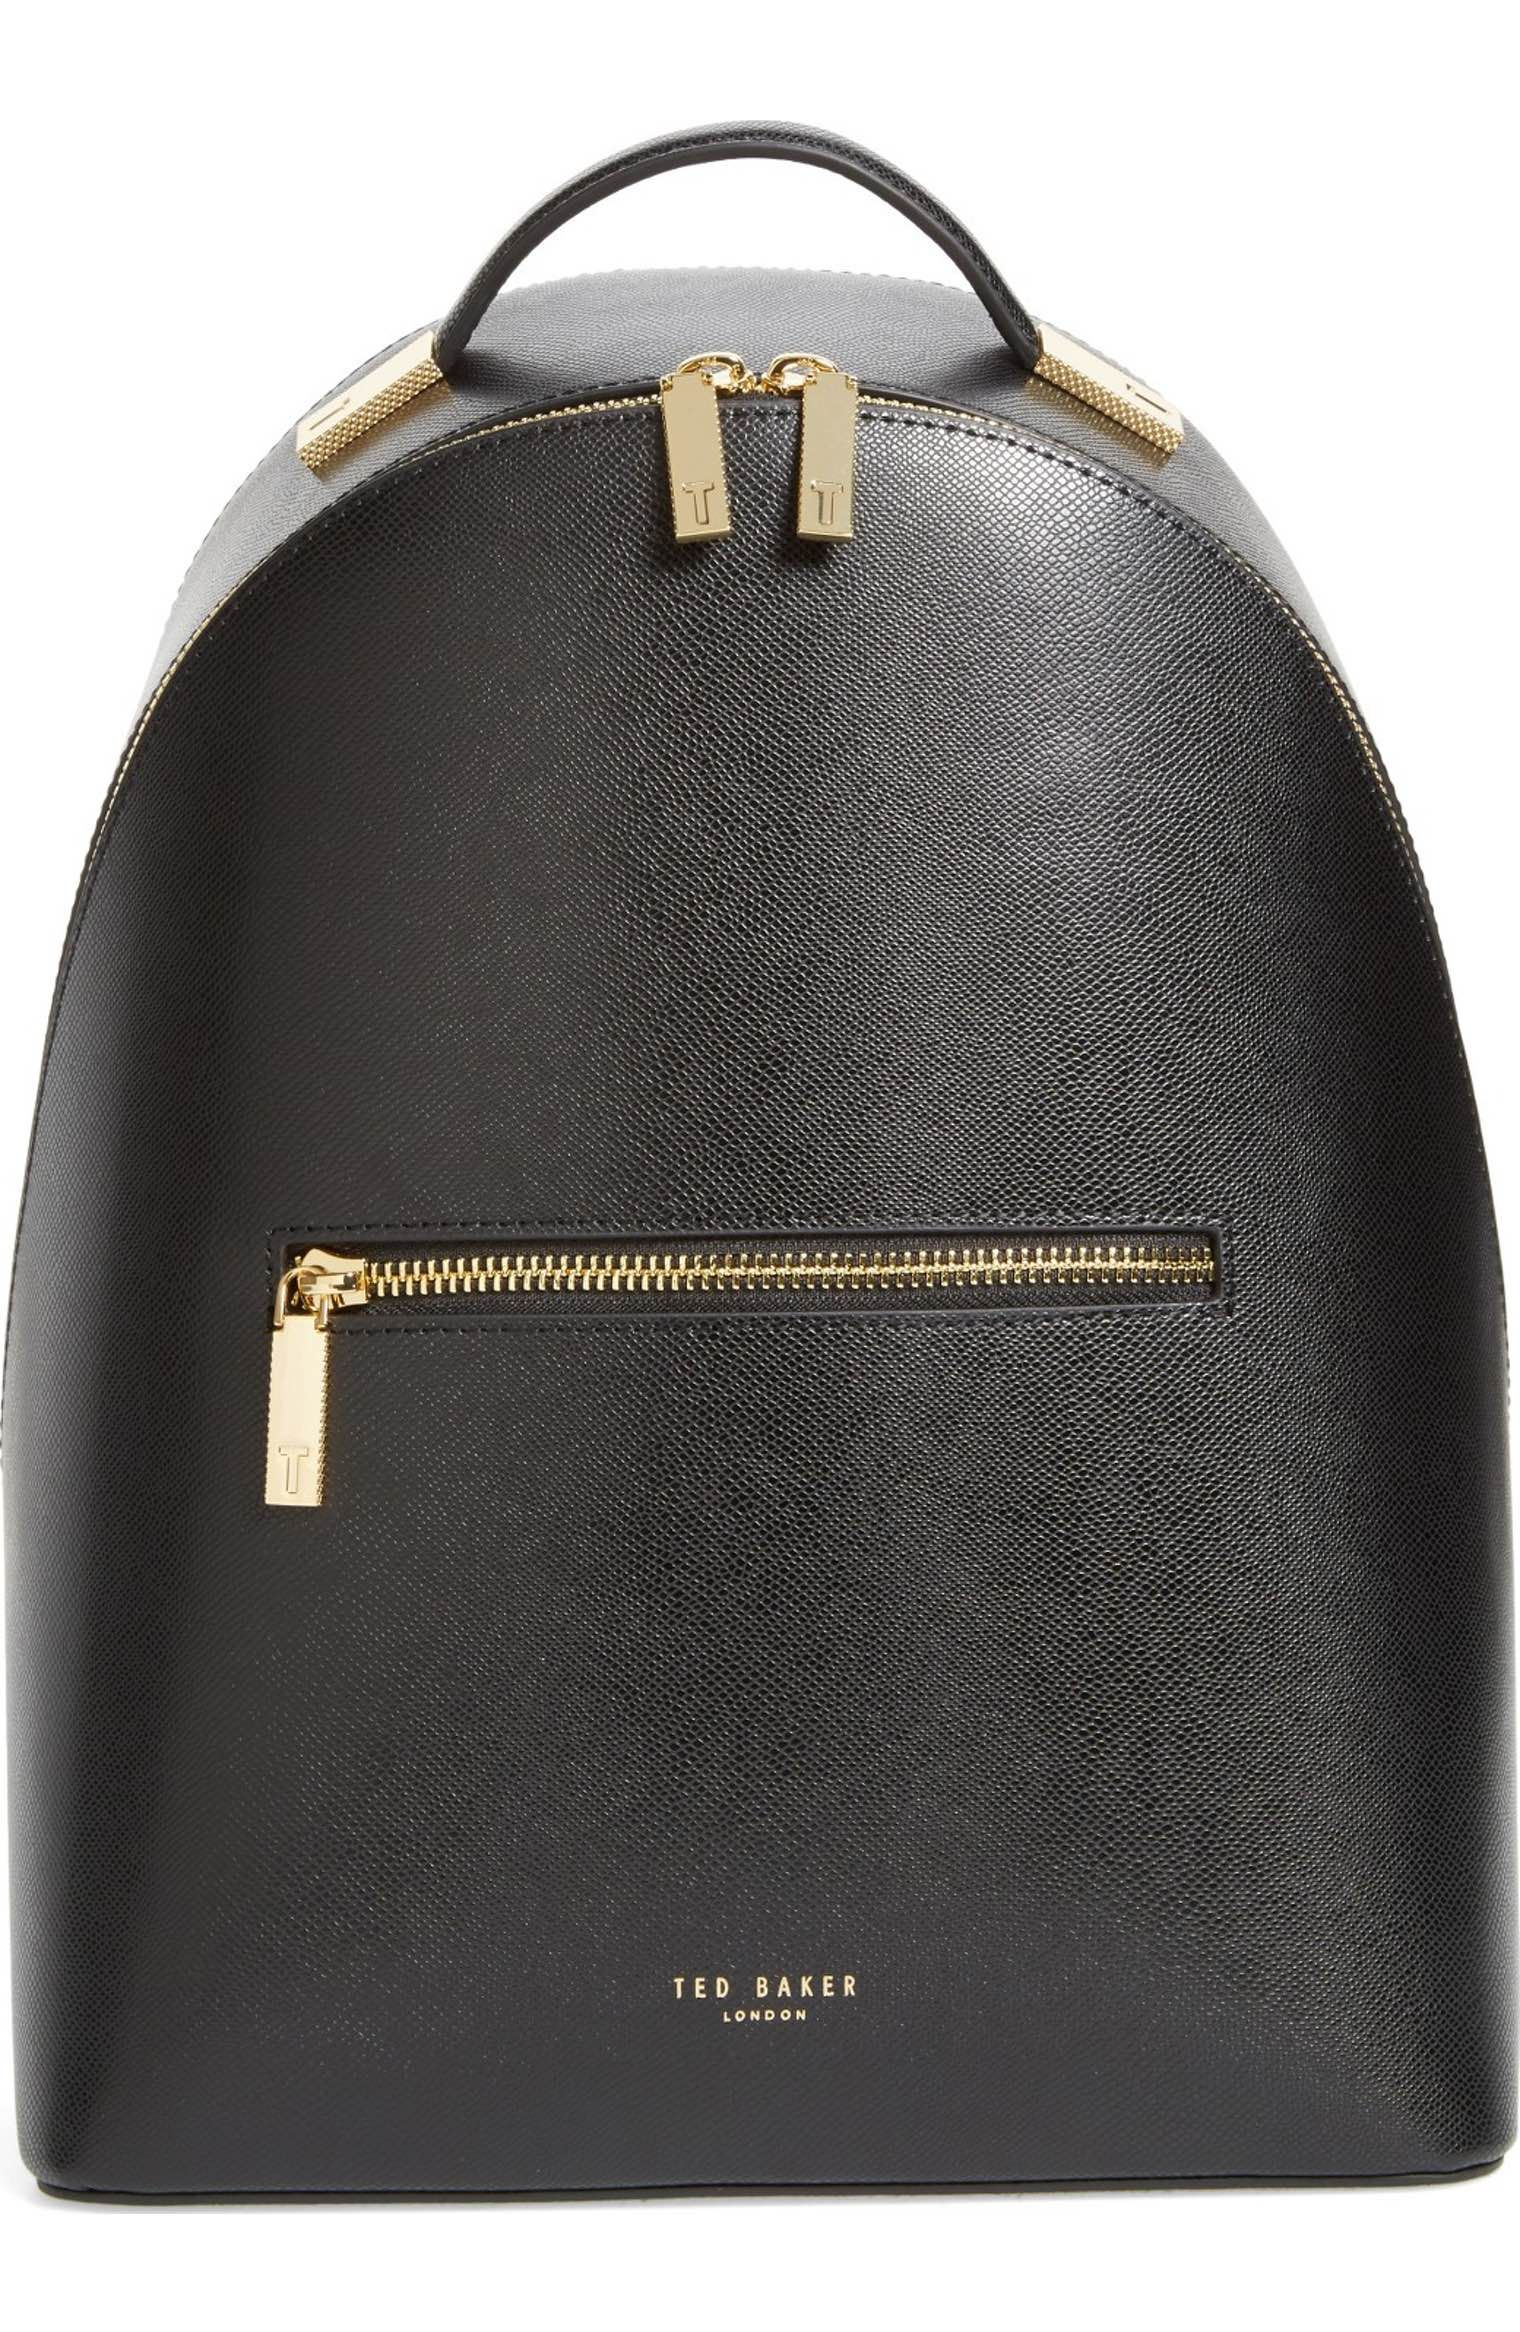 b40bdfb40 Main Image - Ted Baker London Mini Jarvis Leather Backpack